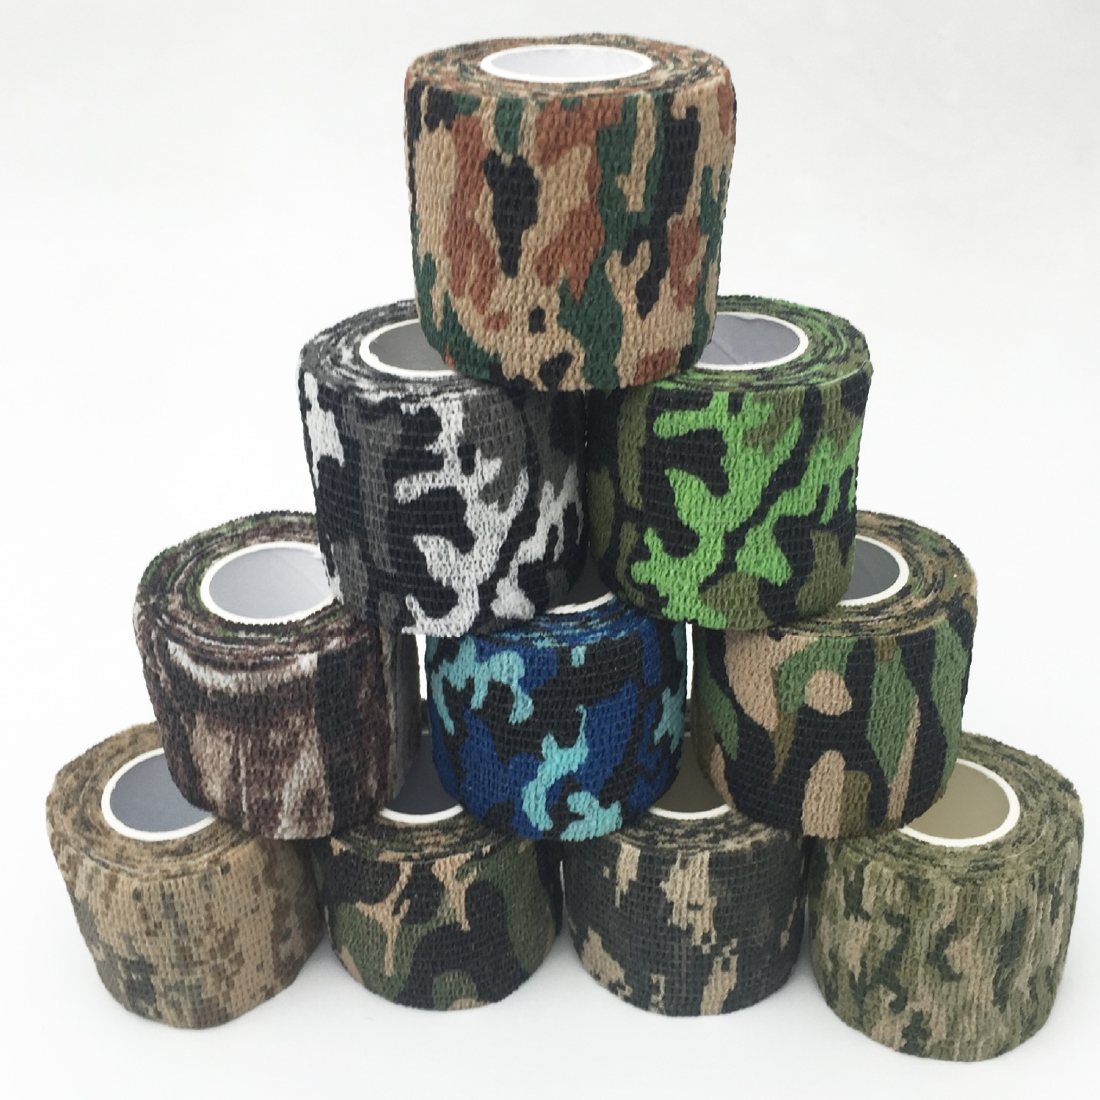 HotTattoo Grip Wrap  Durable Army Camo Waterproof NonwovenTape Disposabl Elastic Body Parts Injury Wound Bandage Home Aids Tool